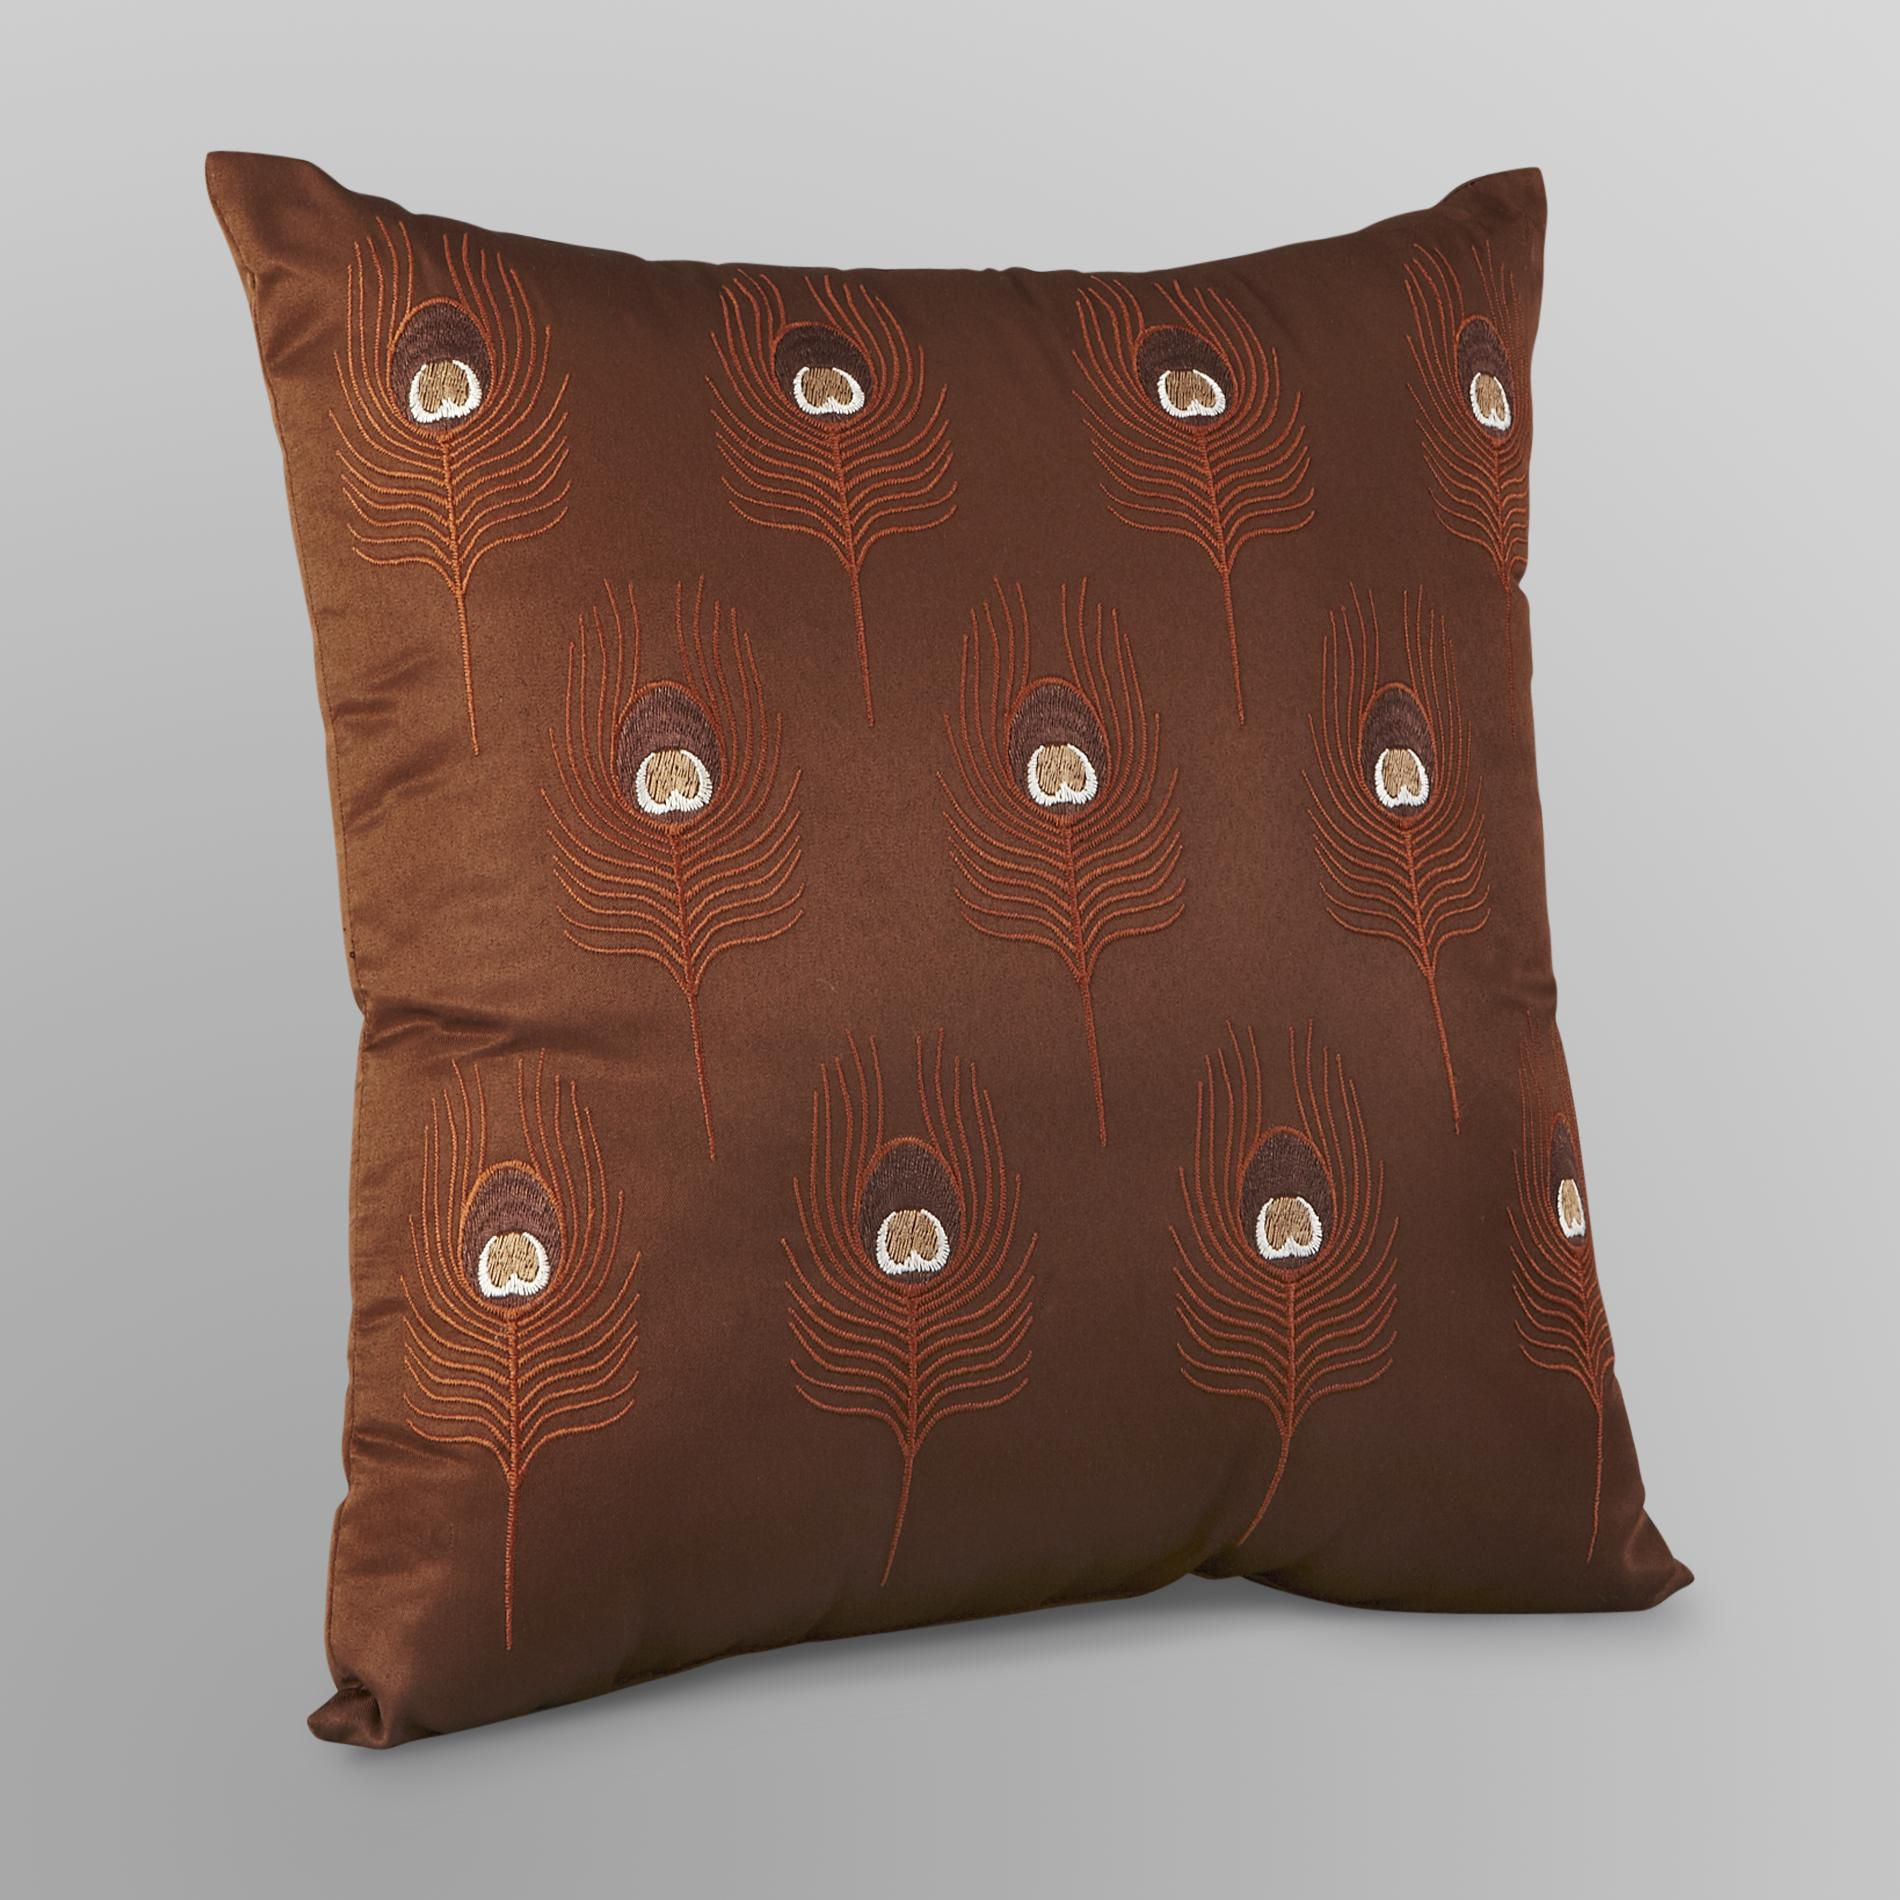 Marrakesh Medallion Decorative Pillow - Feathers